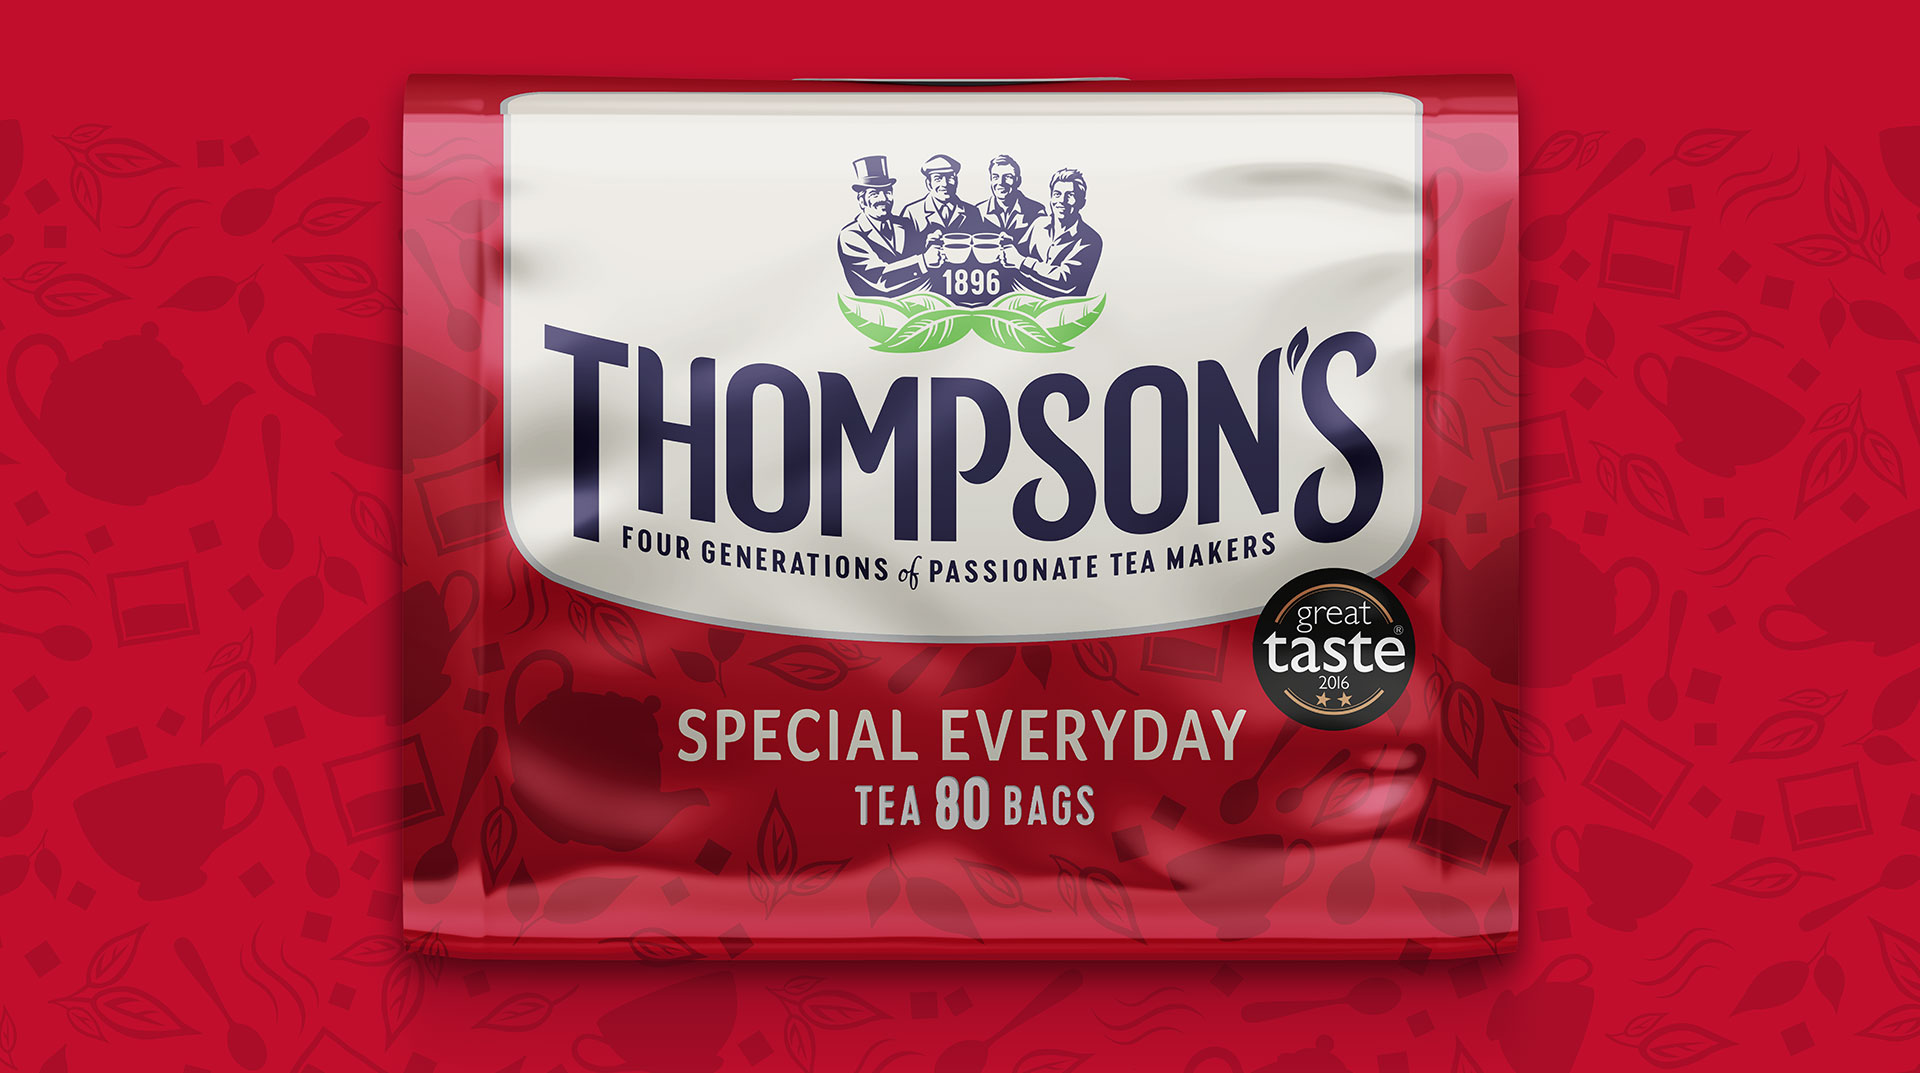 THOMPSON'S TEA